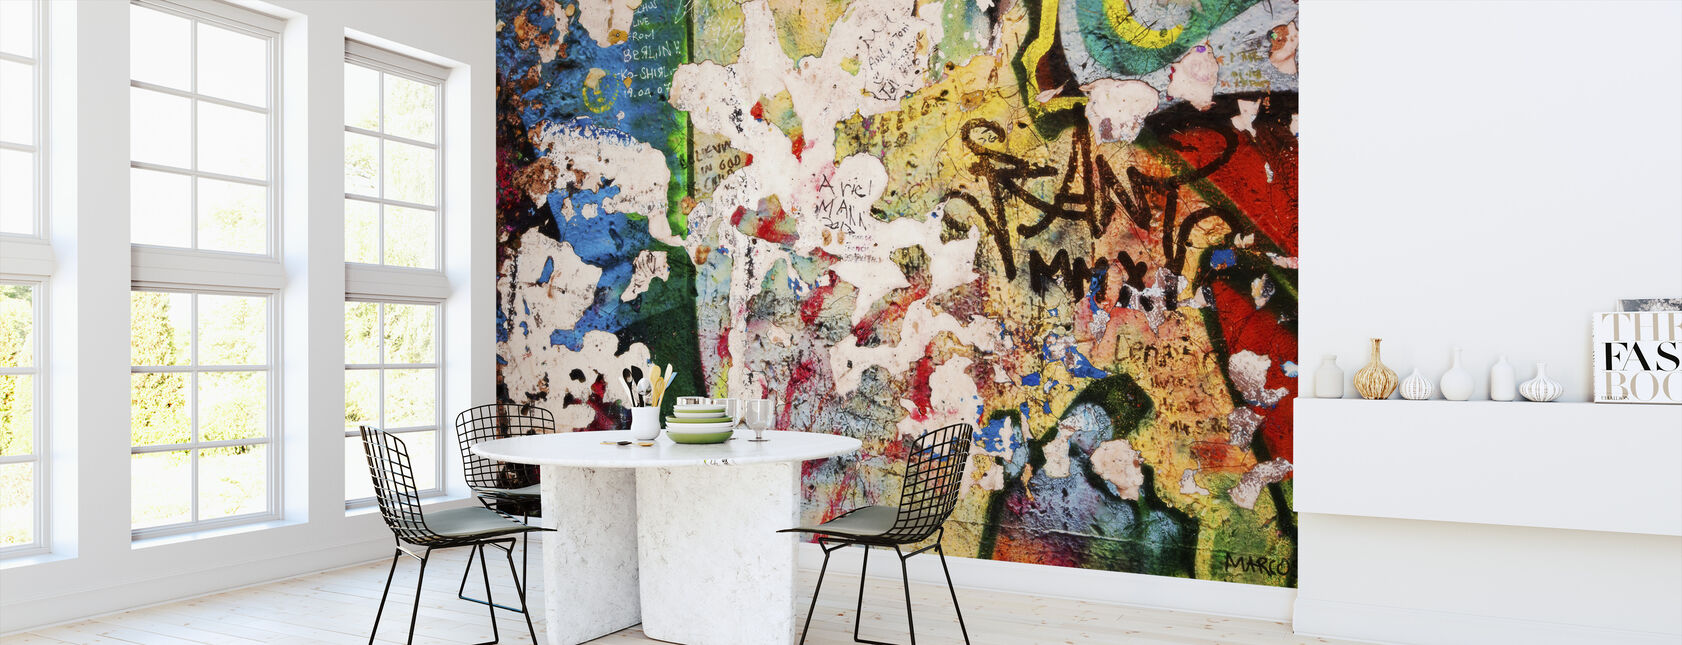 Part of Berlin Wall with Grunge Graffiti - Potsdamer Platz - Wallpaper - Kitchen